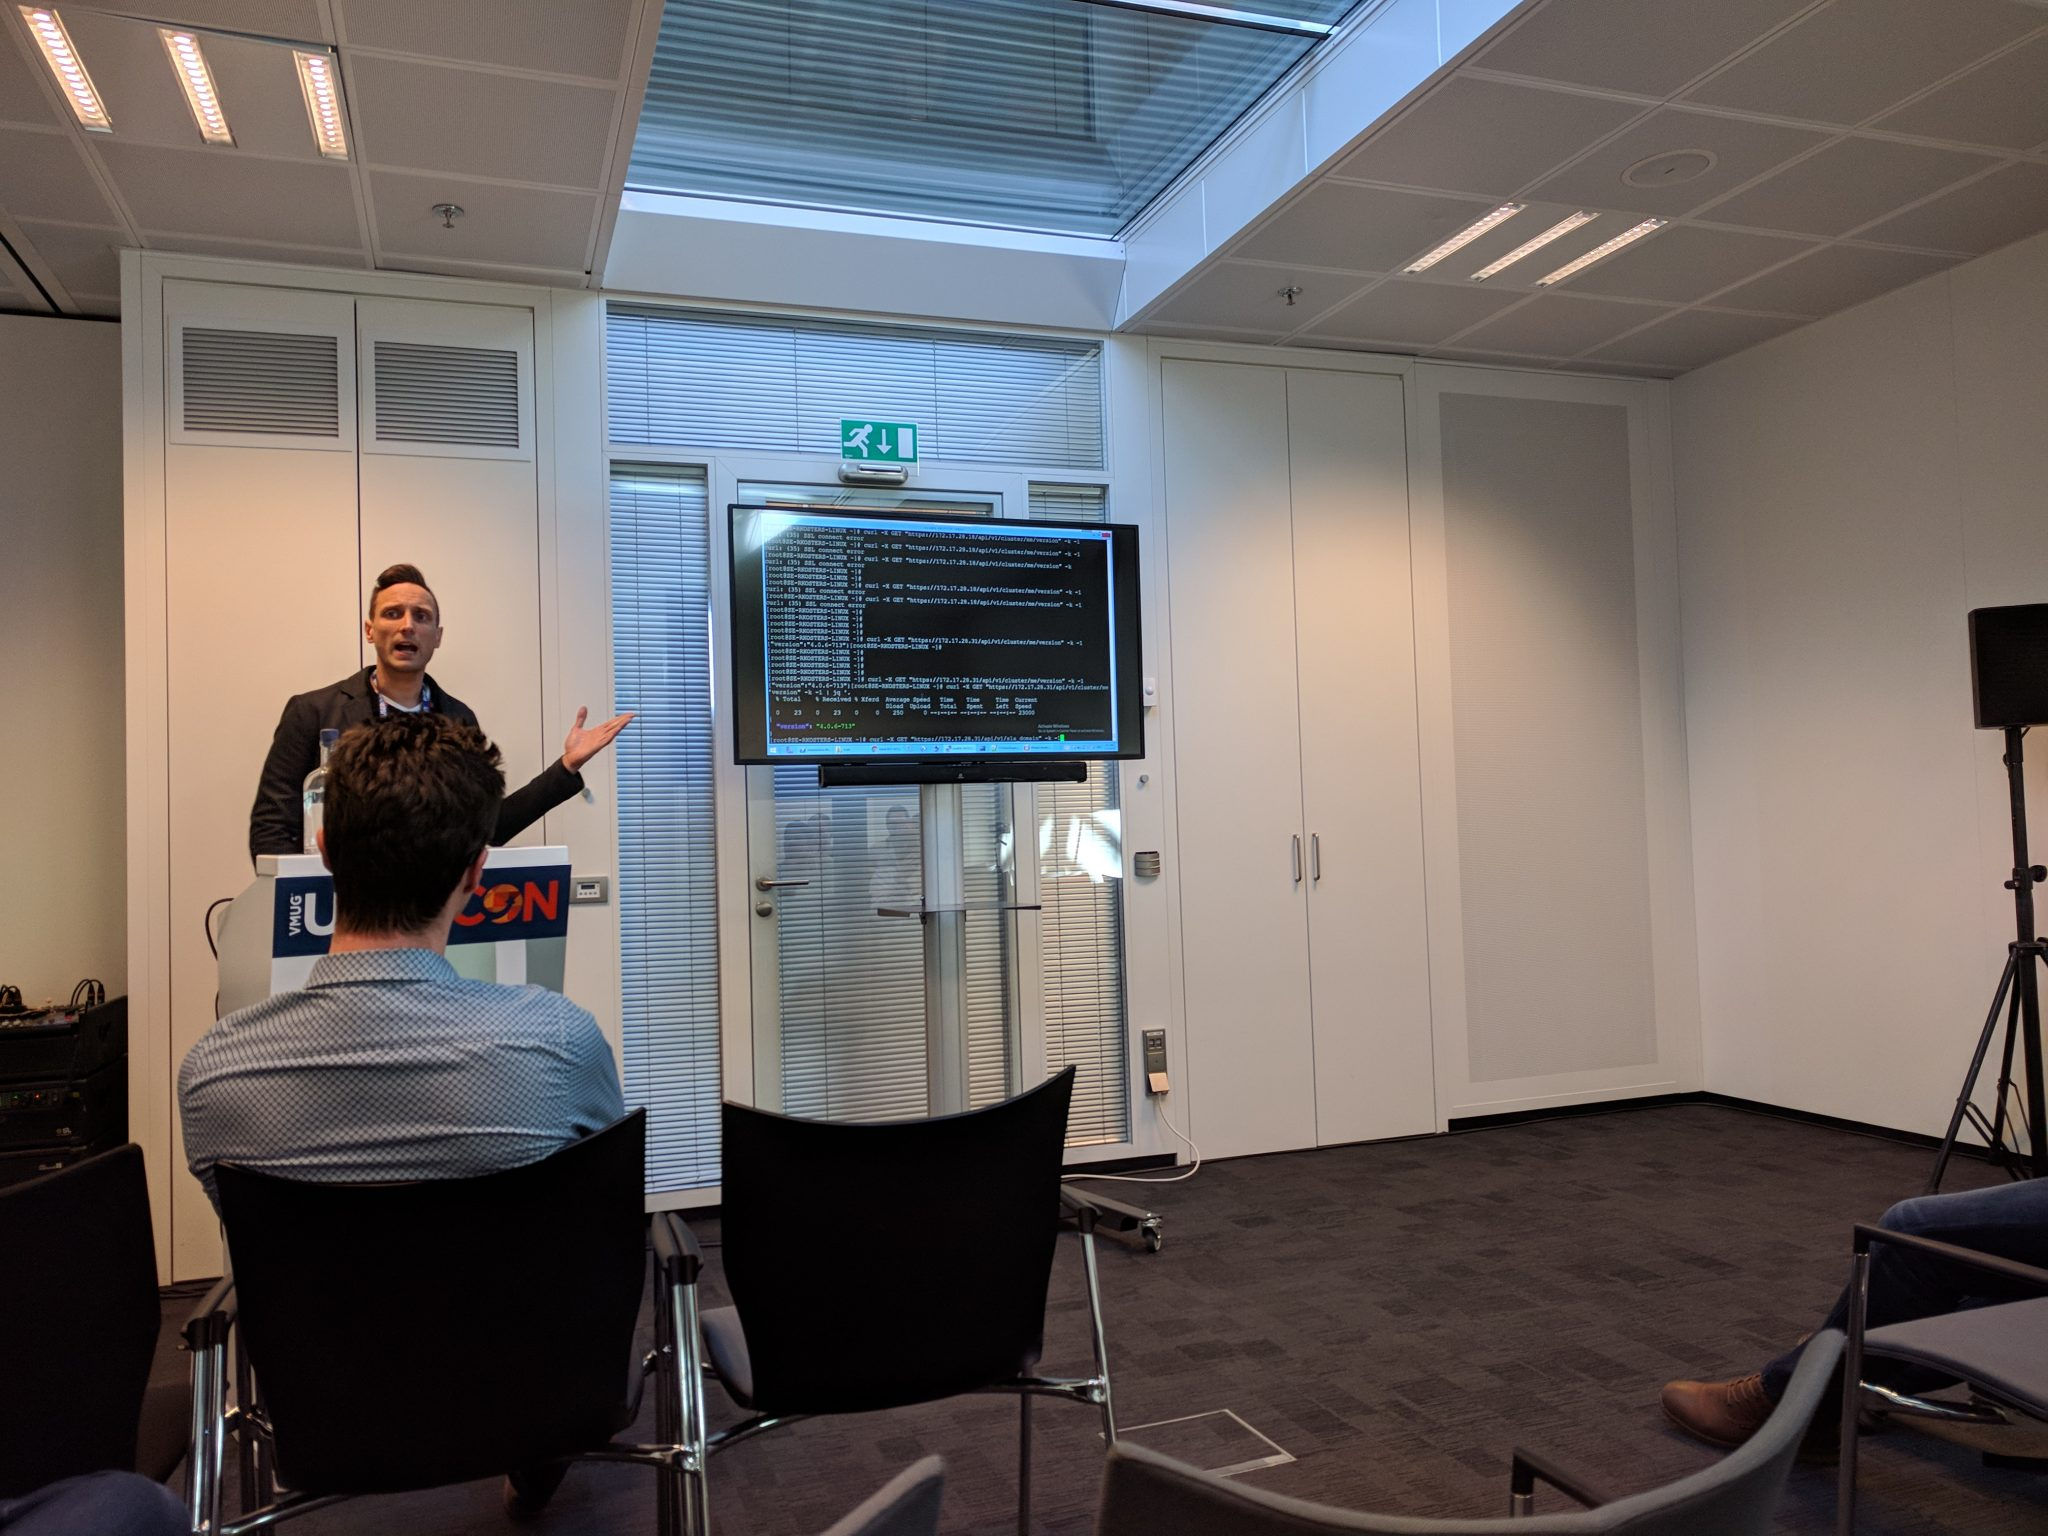 Rutger Kosters talking about the Rubrik REST API